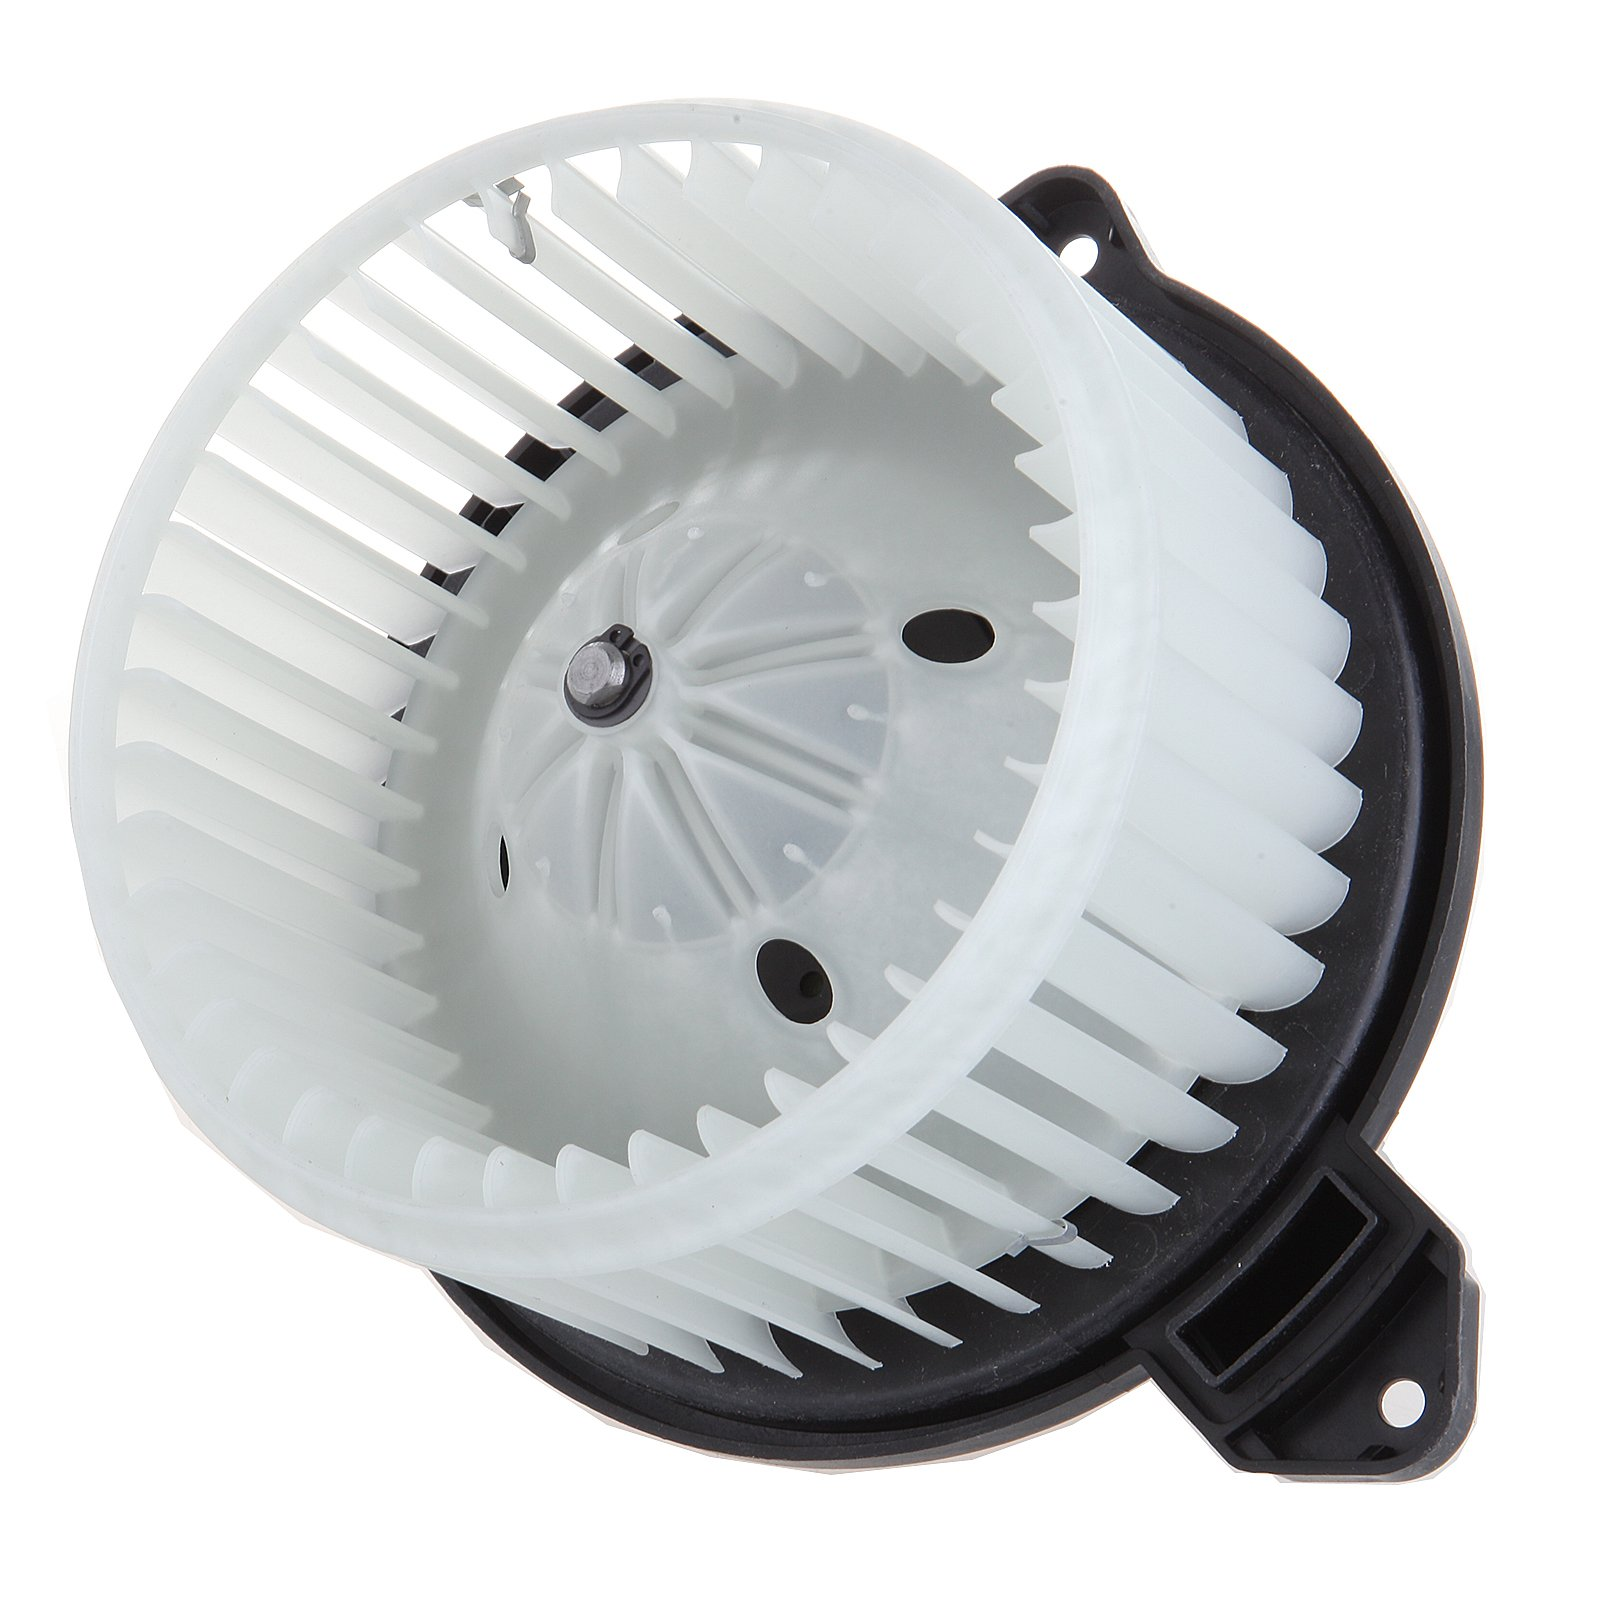 Heater Blower Motor w// Fan Cage for Dodge Ram 1500 2500 3500 Jeep Grand Cherokee